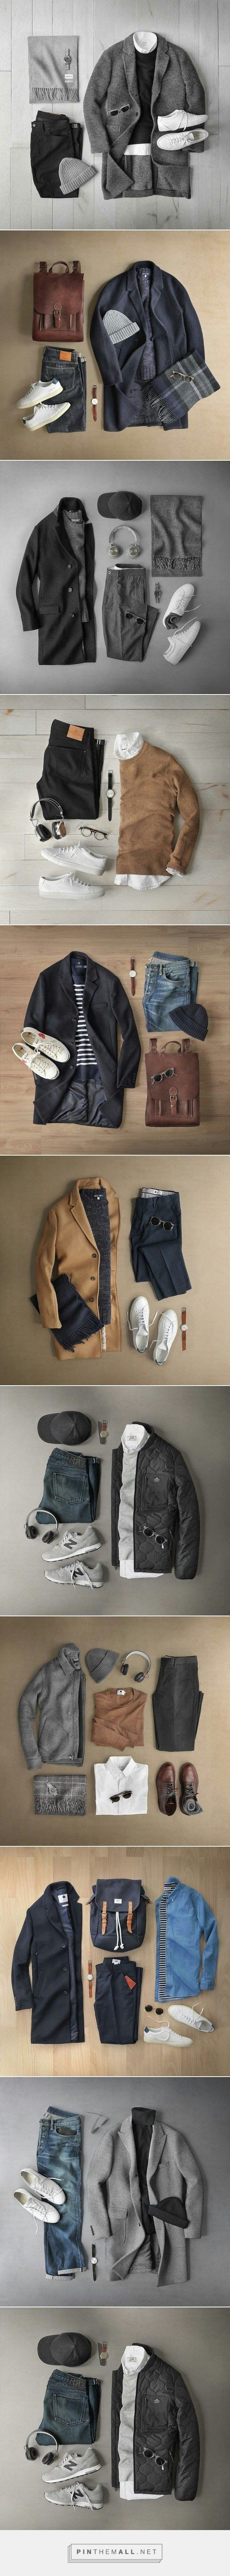 Coolest Fall Outfit Ideas To Make You Look Sharp – PS 1983